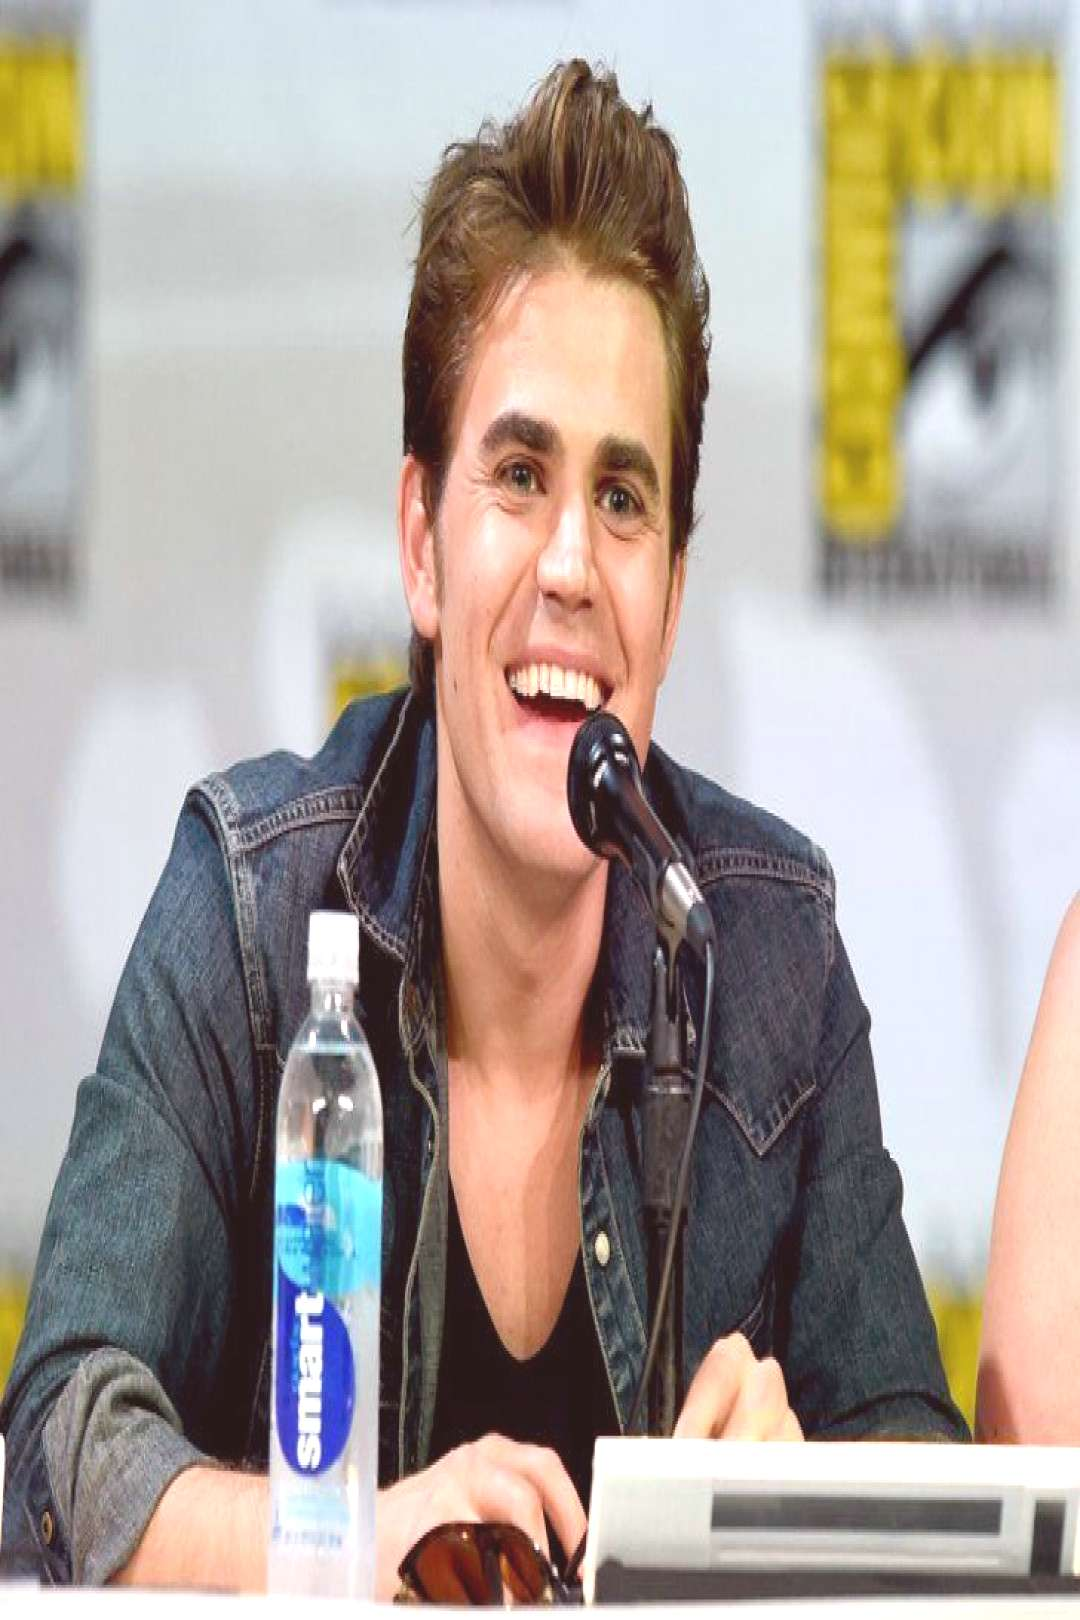 Paul Wesley - Paul Wesley  Pin for Later 28 Reasons Comic-Con Is Basically a Hot Guy Parade Paul